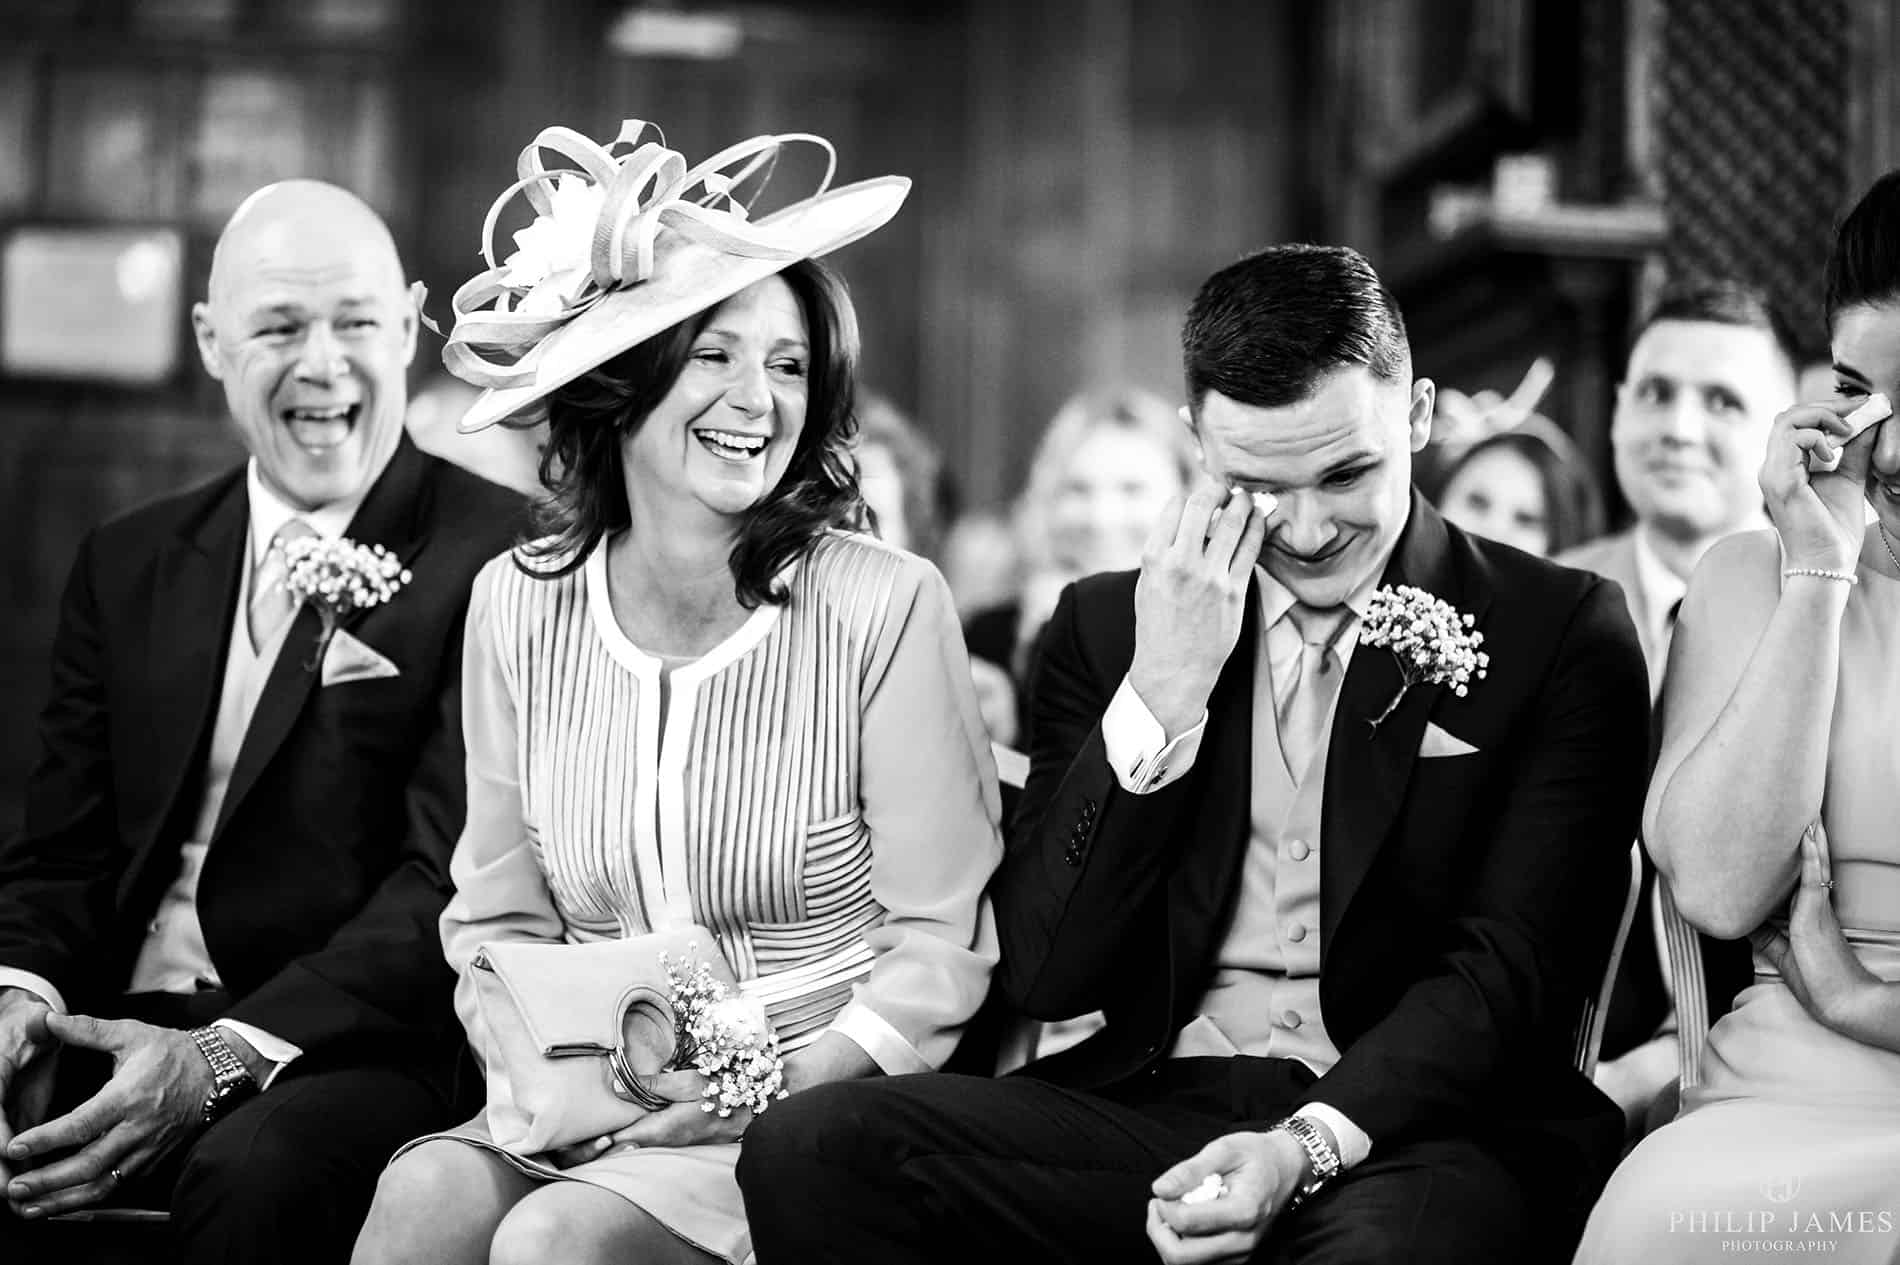 West Midlands Wedding Photography - Birmingham wedding photographer Philip James Photography specializes in Luxury Weddings in the UK & Overseas